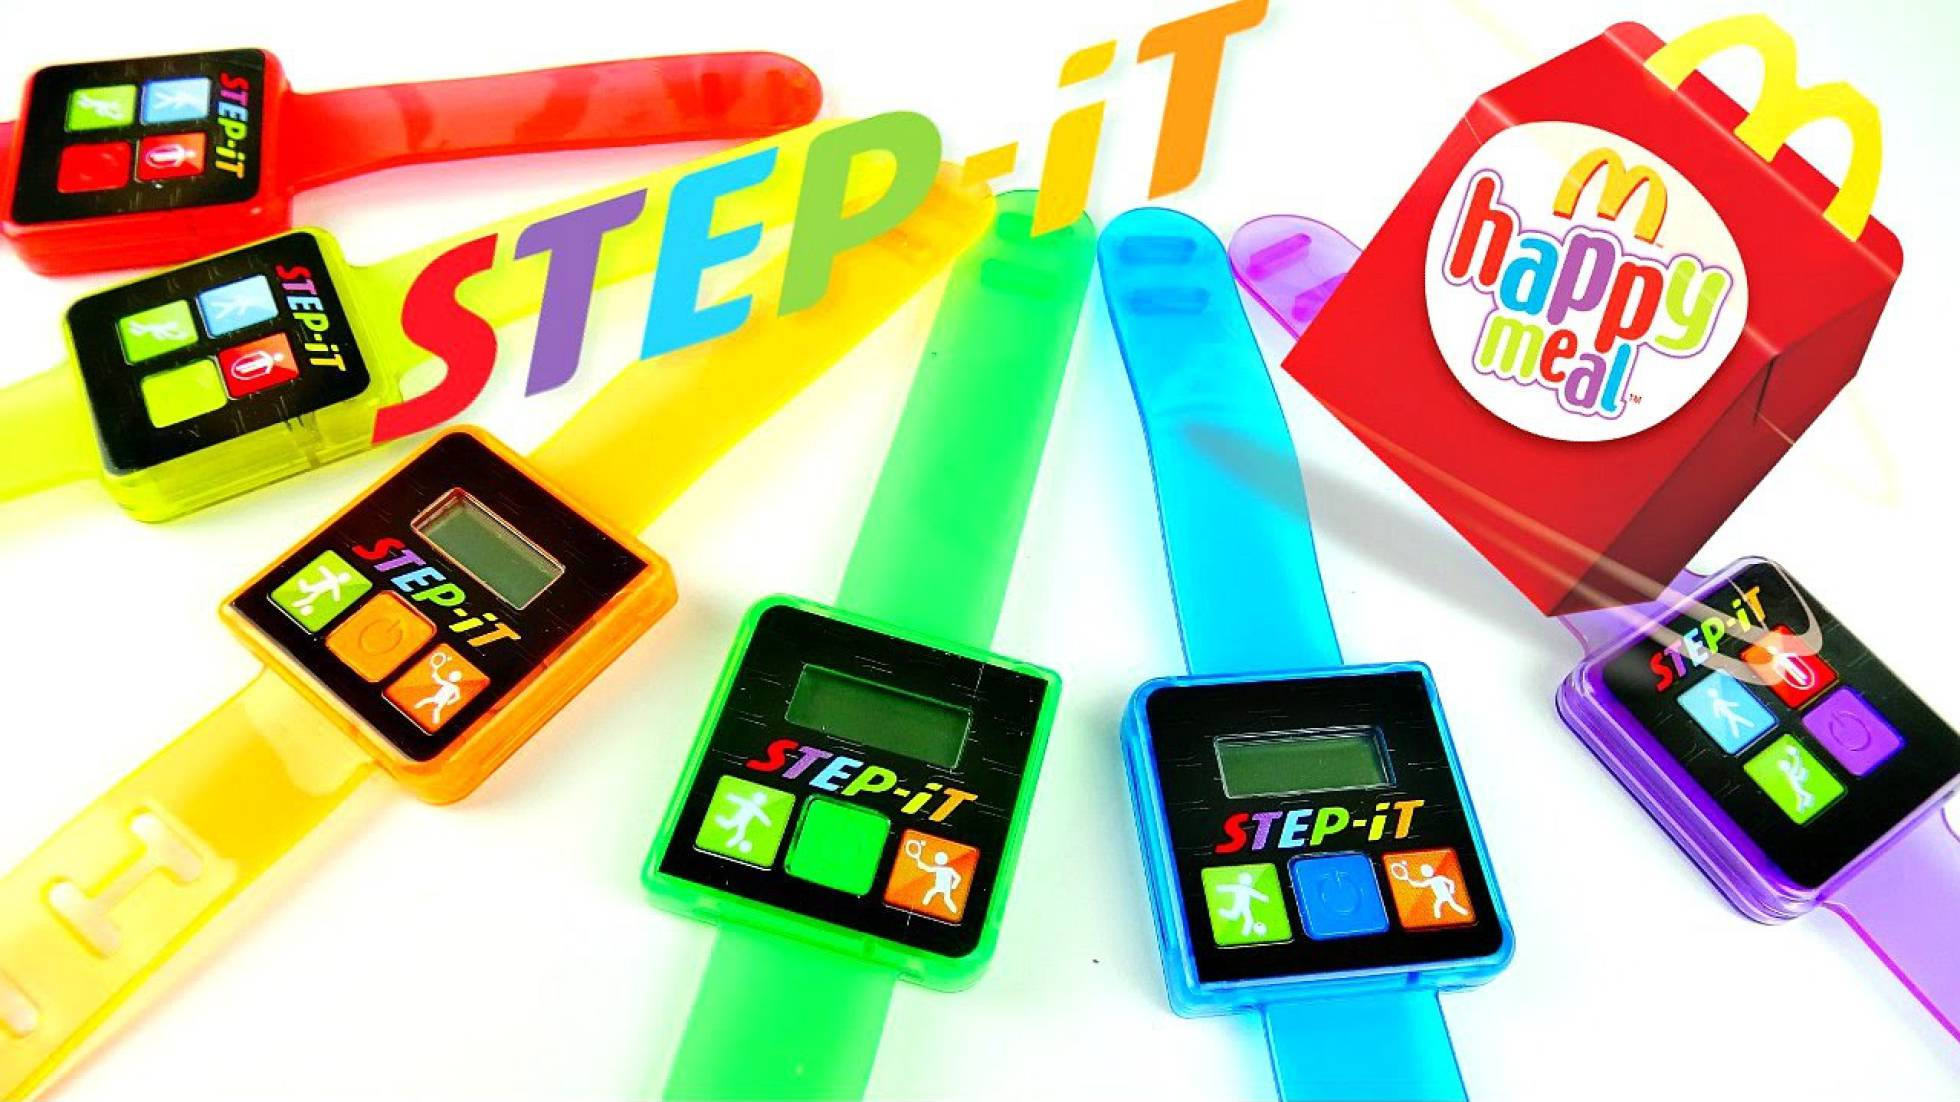 Step-It Activity Trackers